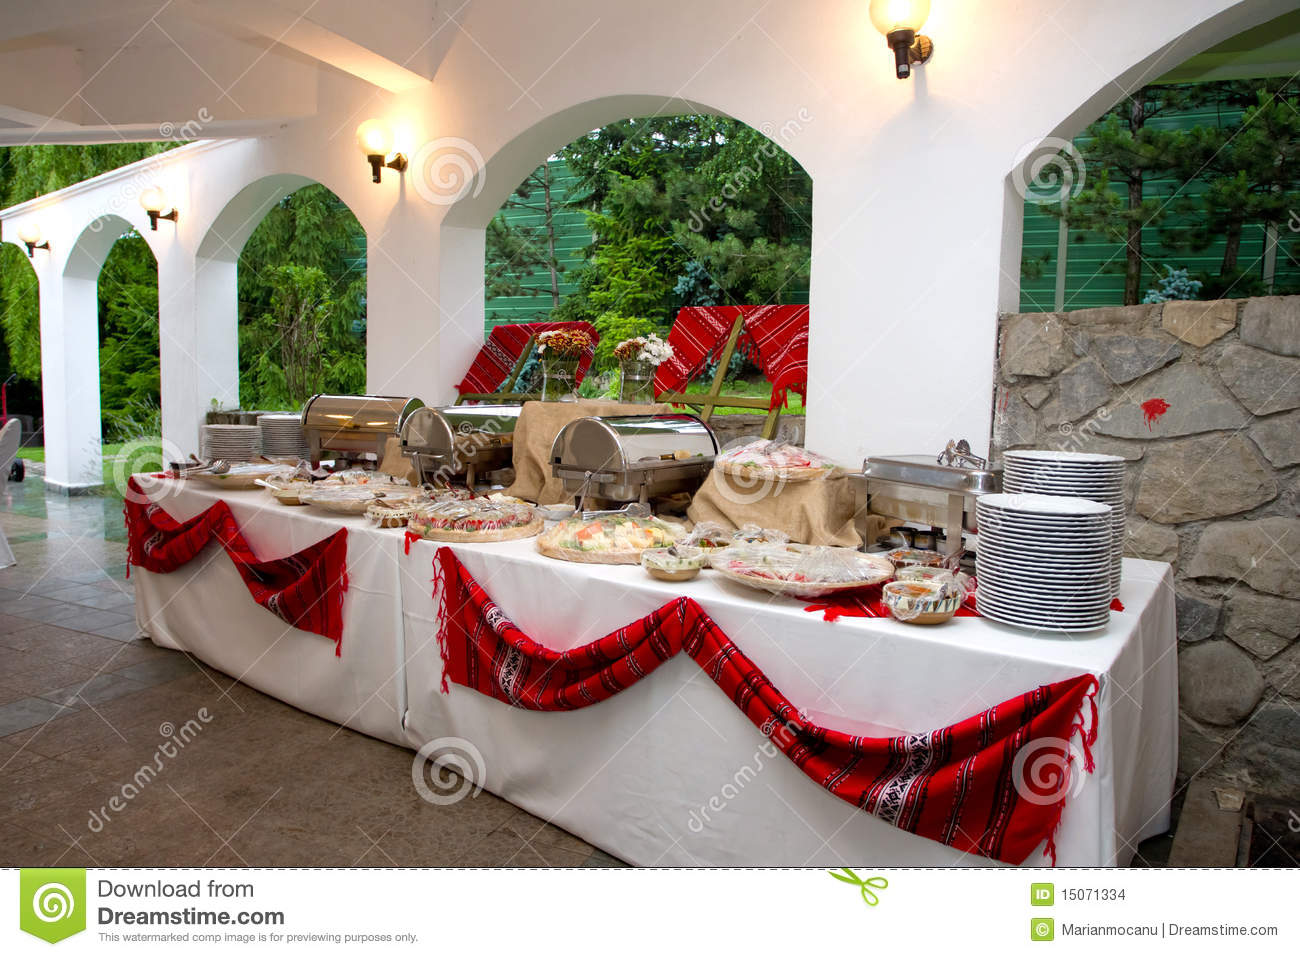 Table Bar Rangements Food Table Arrangement Stock Photo Image Of Serving